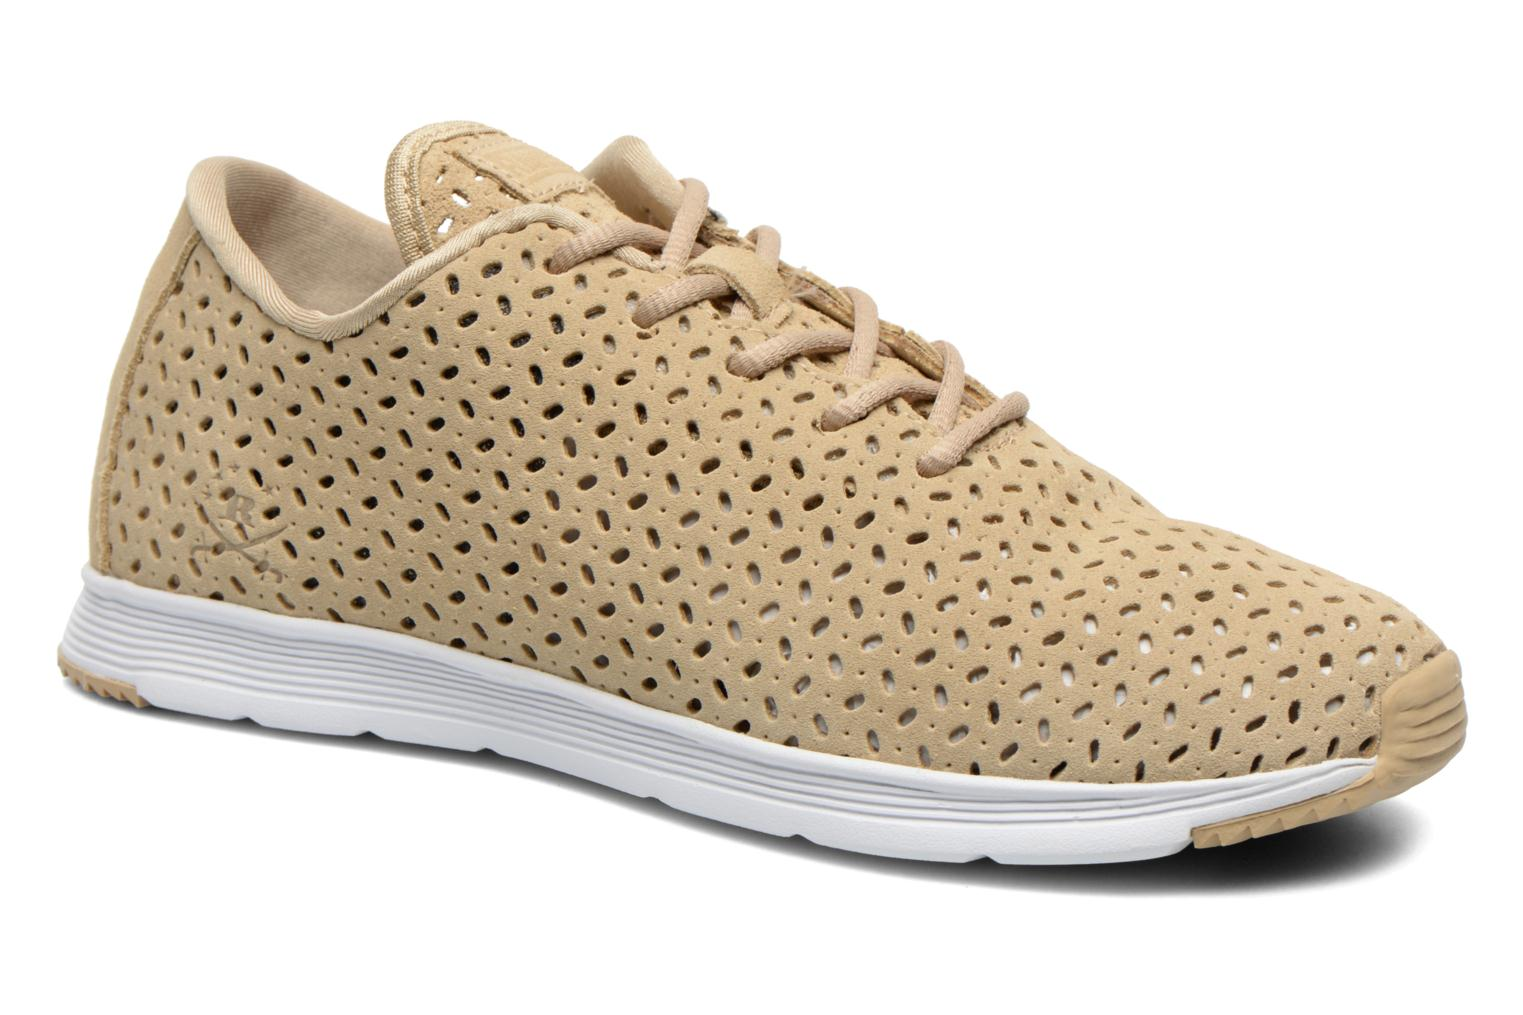 Sneakers Field Lite Perf by Ransom